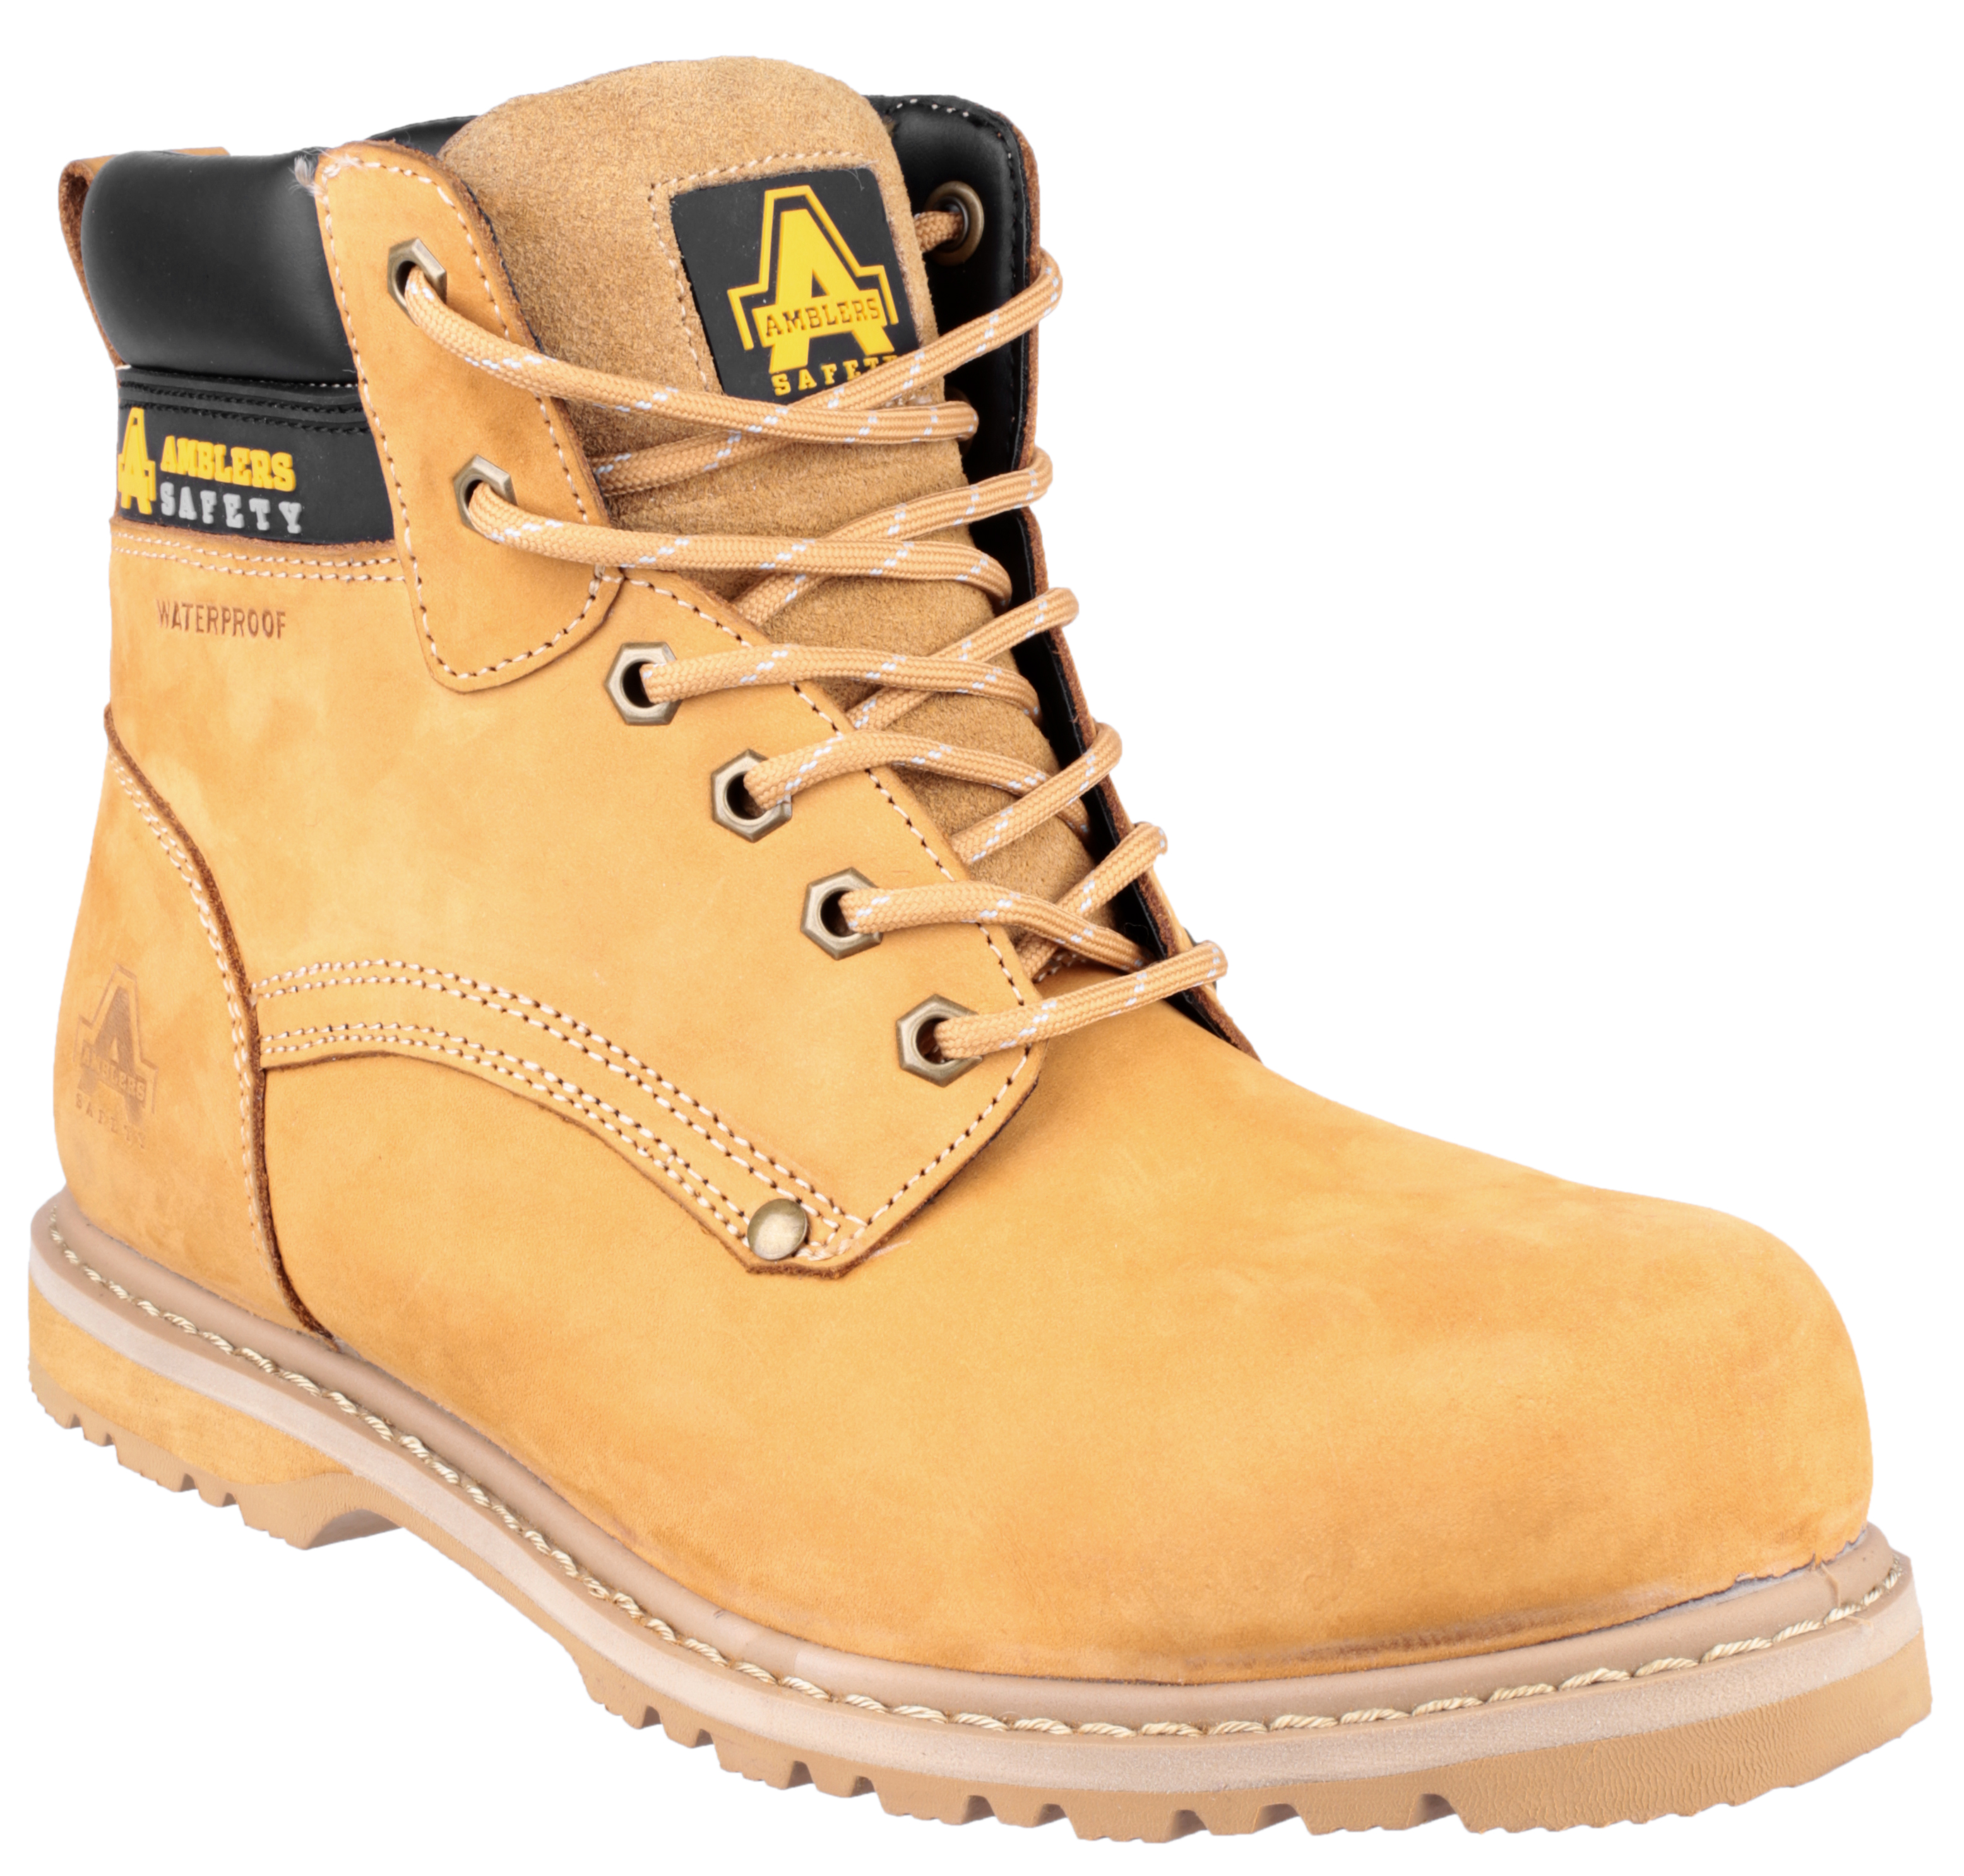 Amblers Safety Boots Fs147 Honey Safety Boots R Us